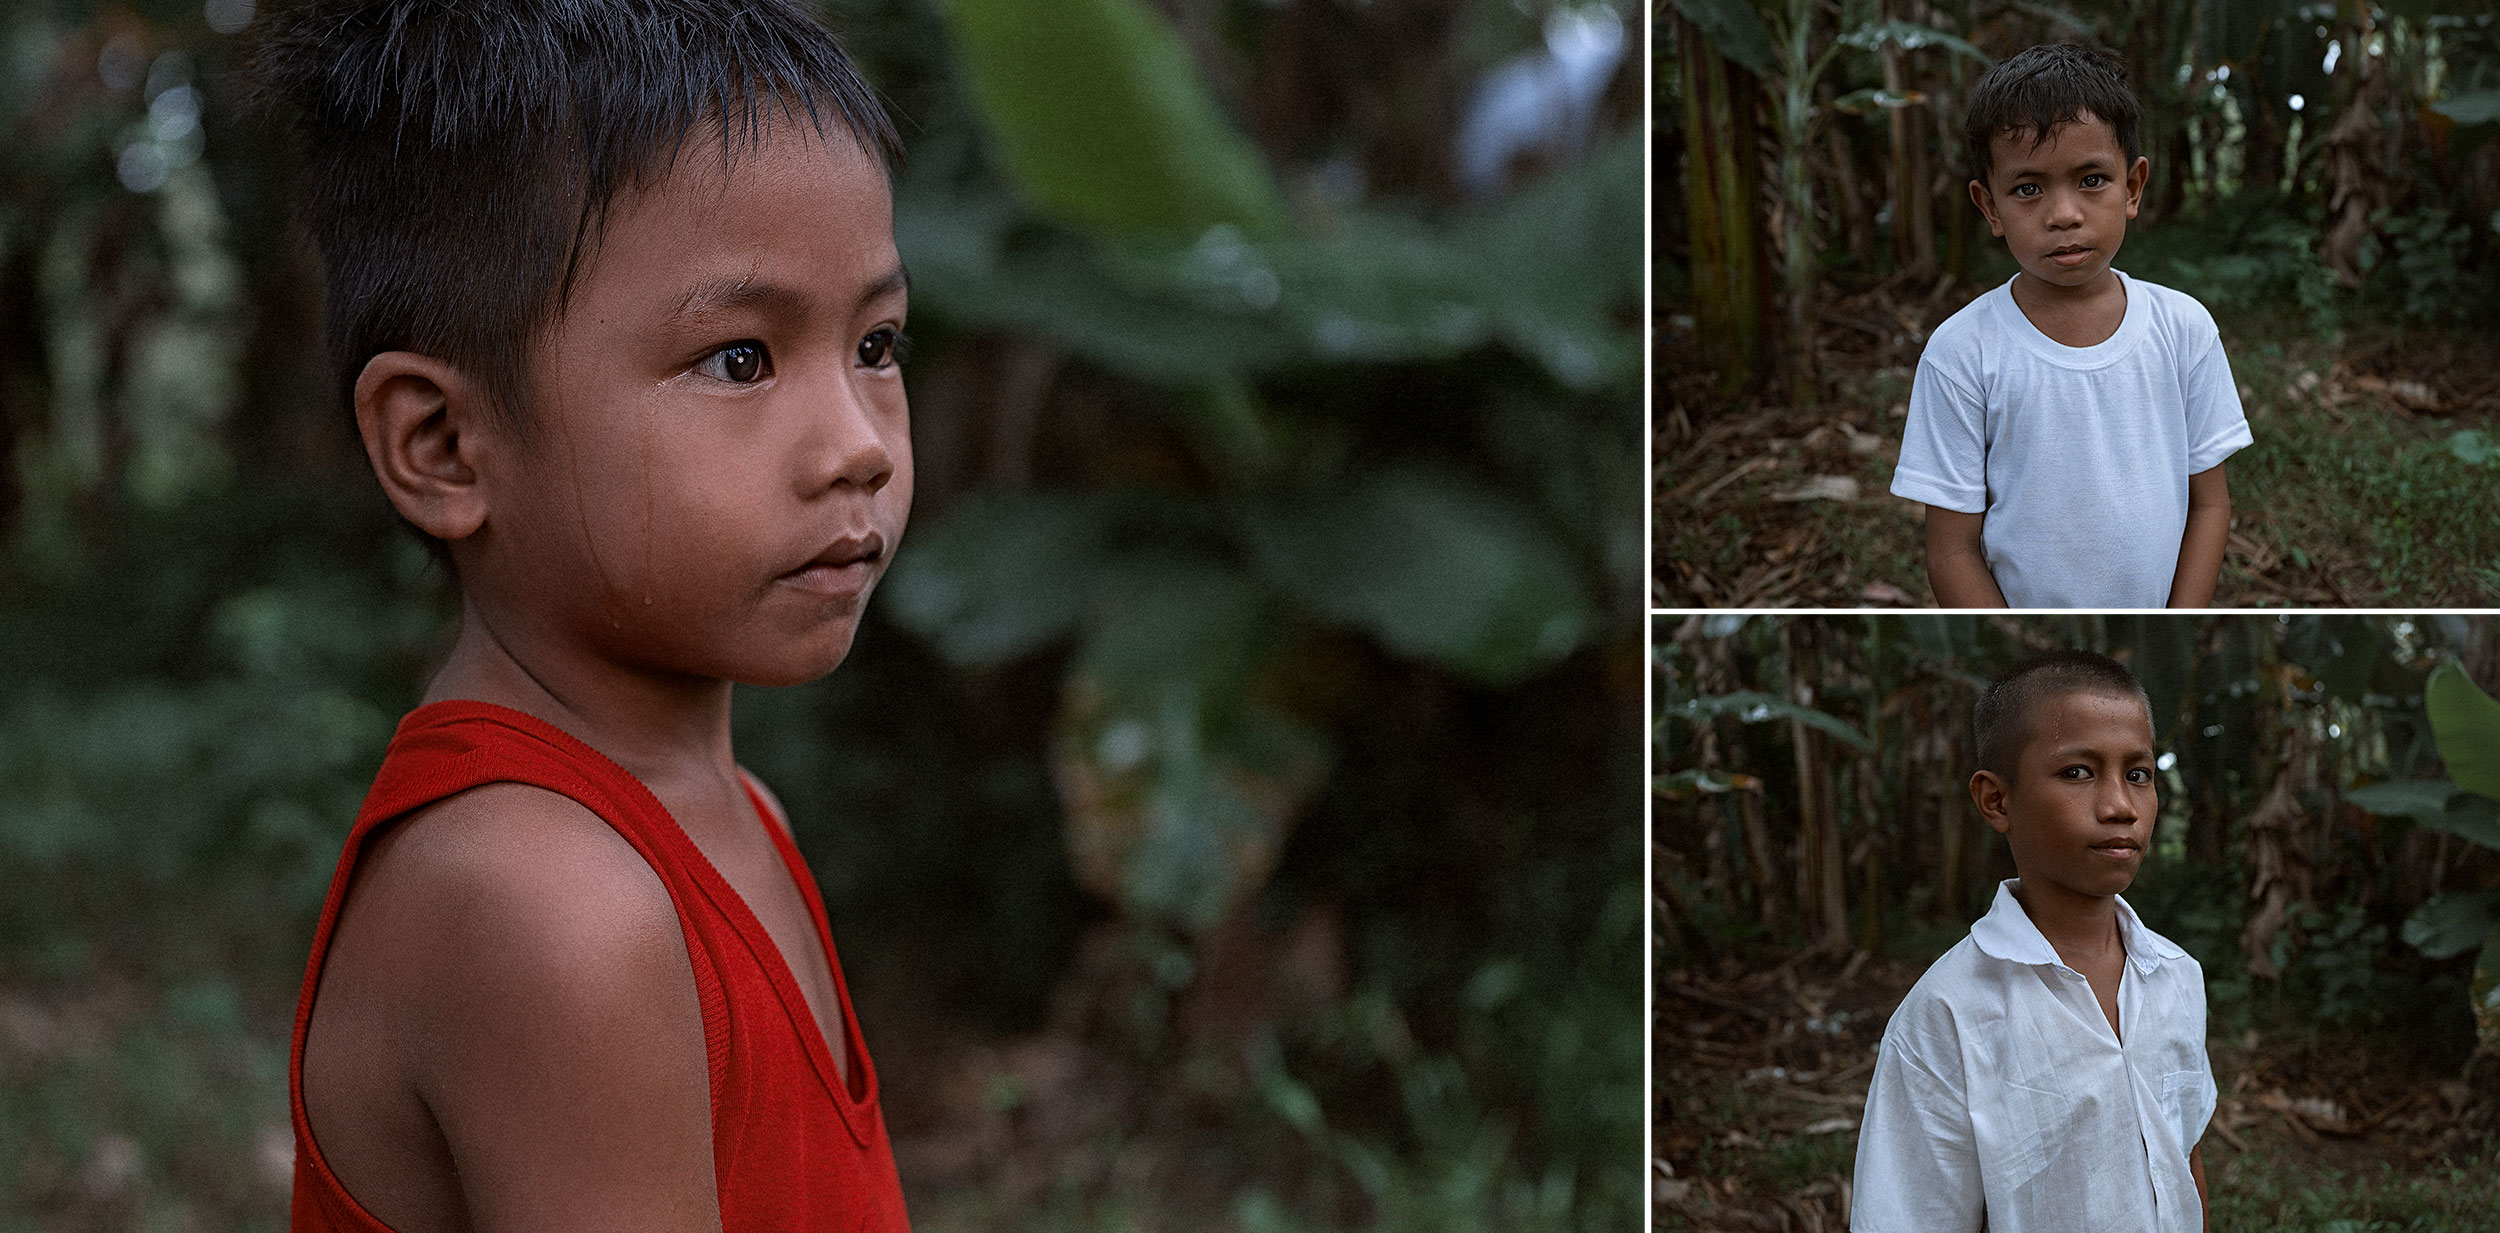 Good Boy Wolf Photographer, Philippines, little child wearing a red vest, looking sad